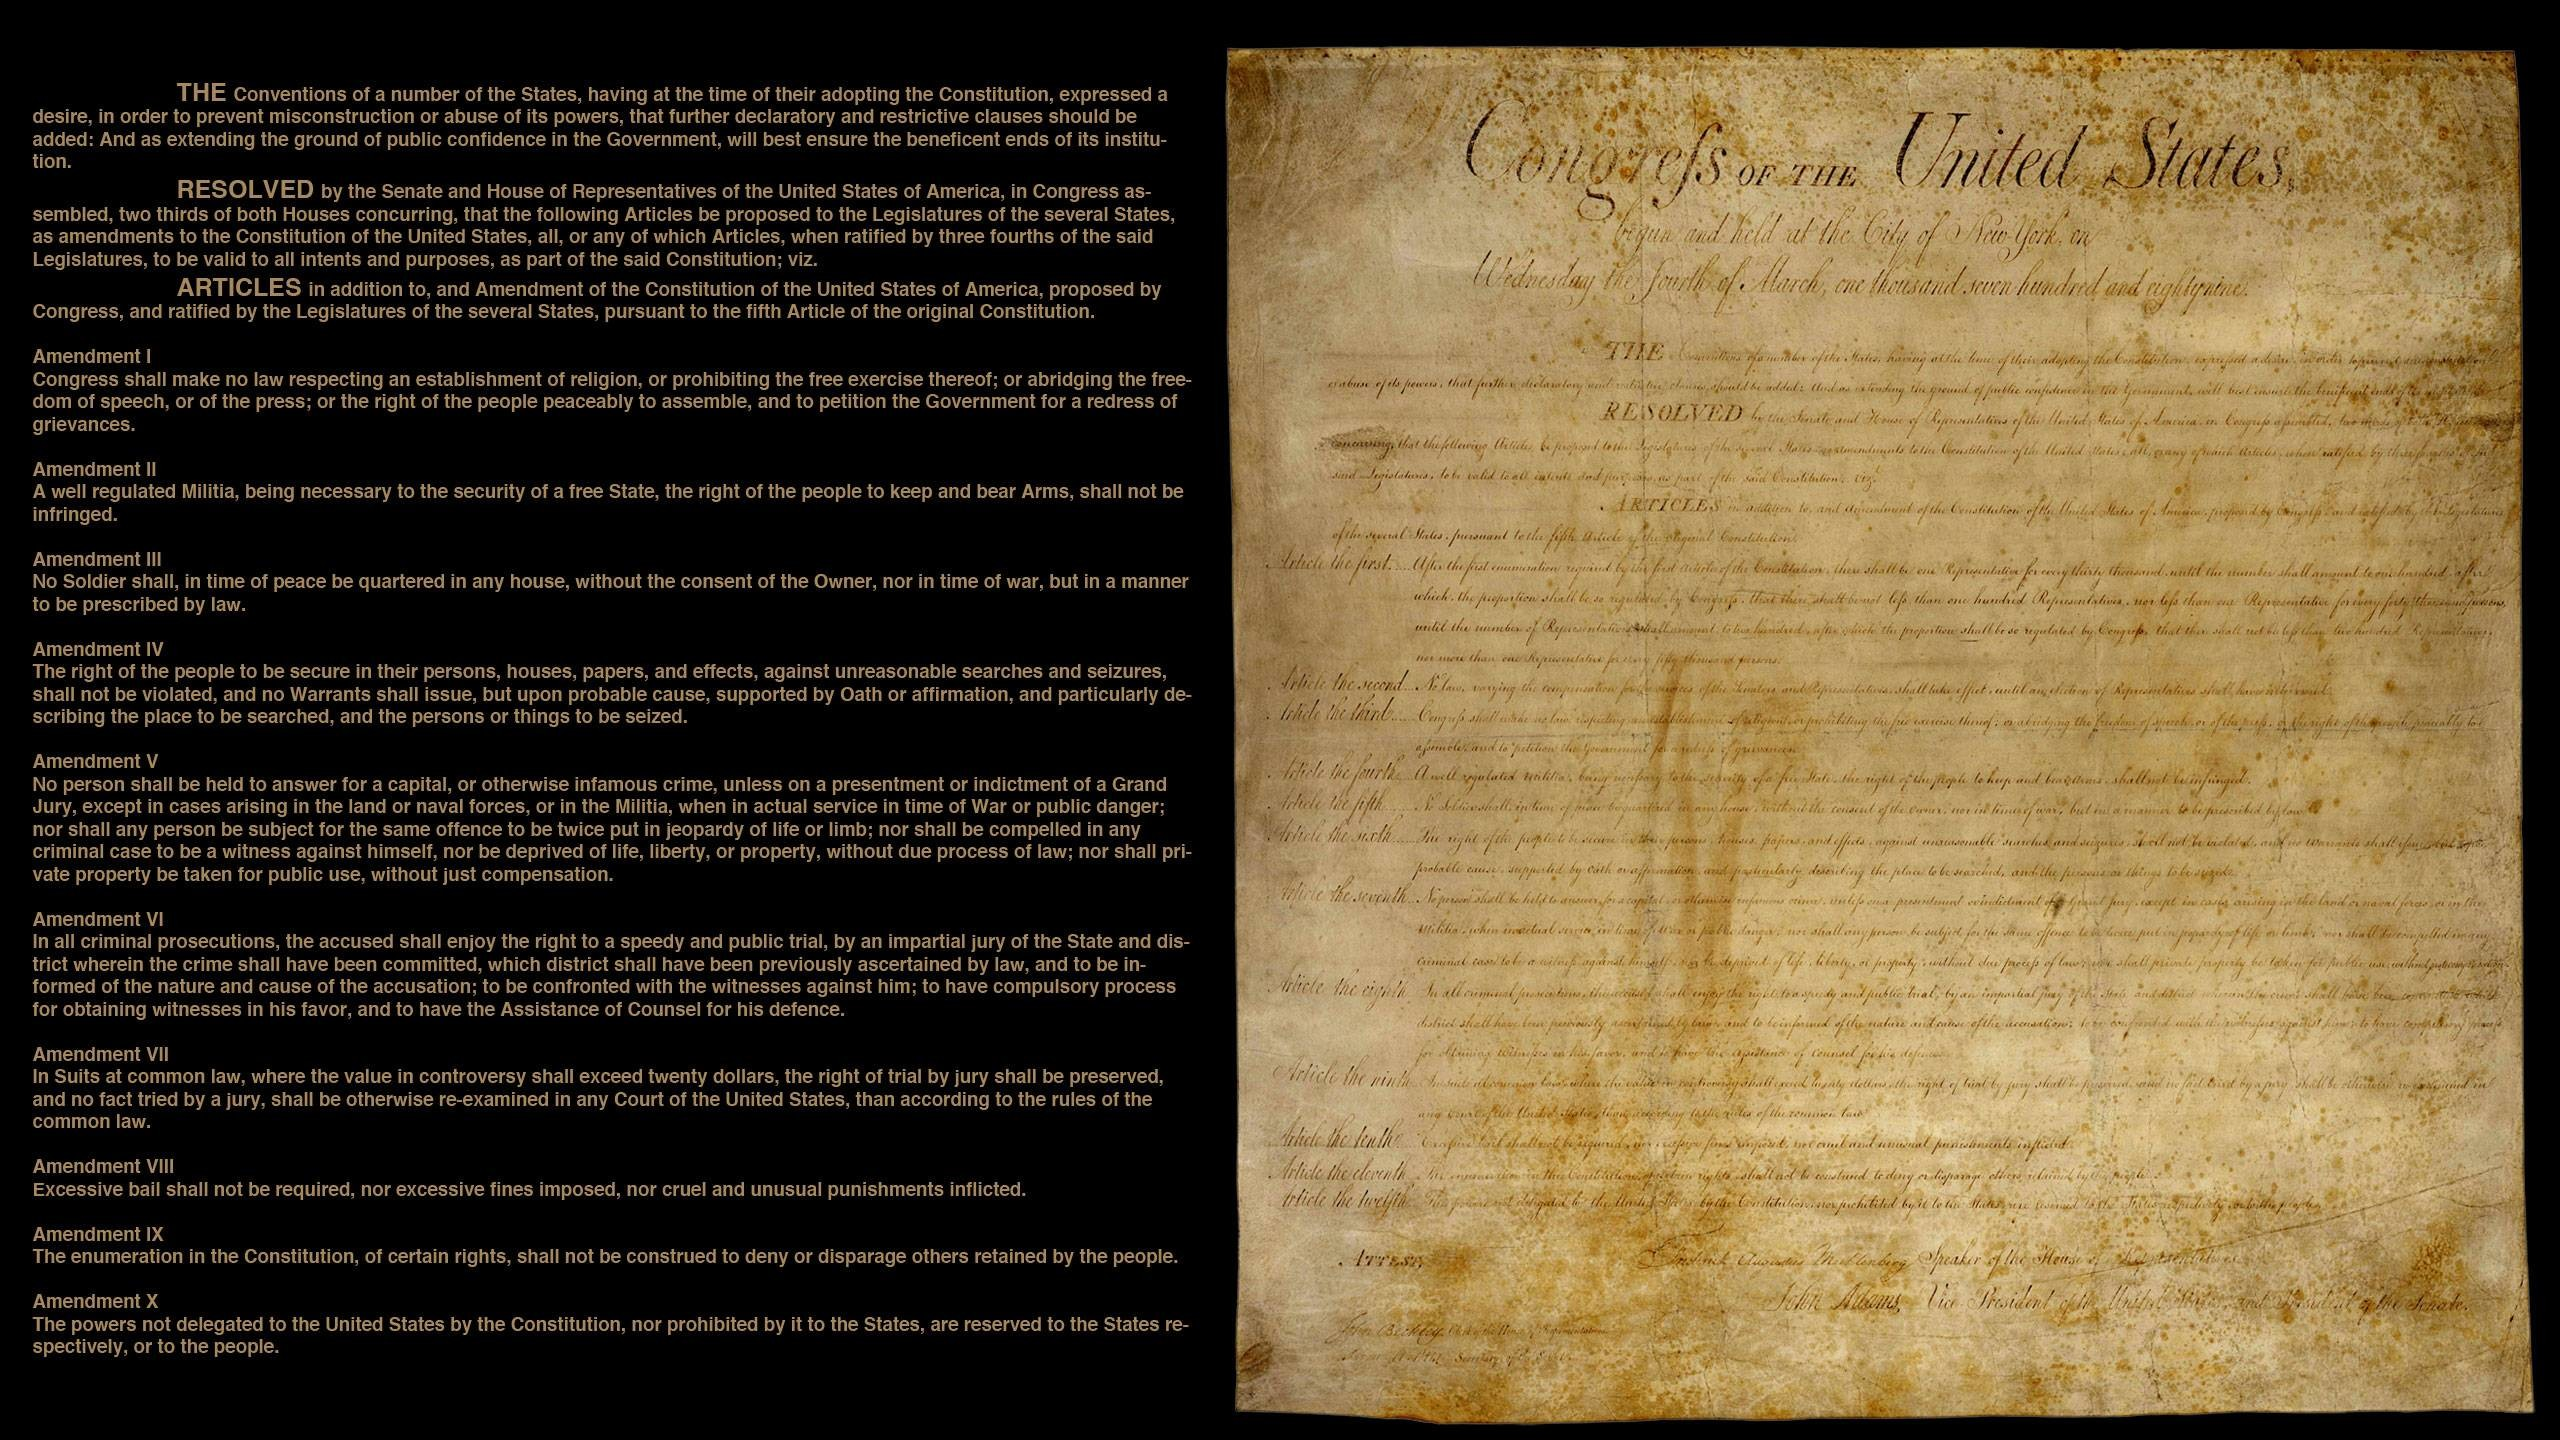 2560x1440 Made a desktop wallpaper of the Bill of Rights, thought I'd share.